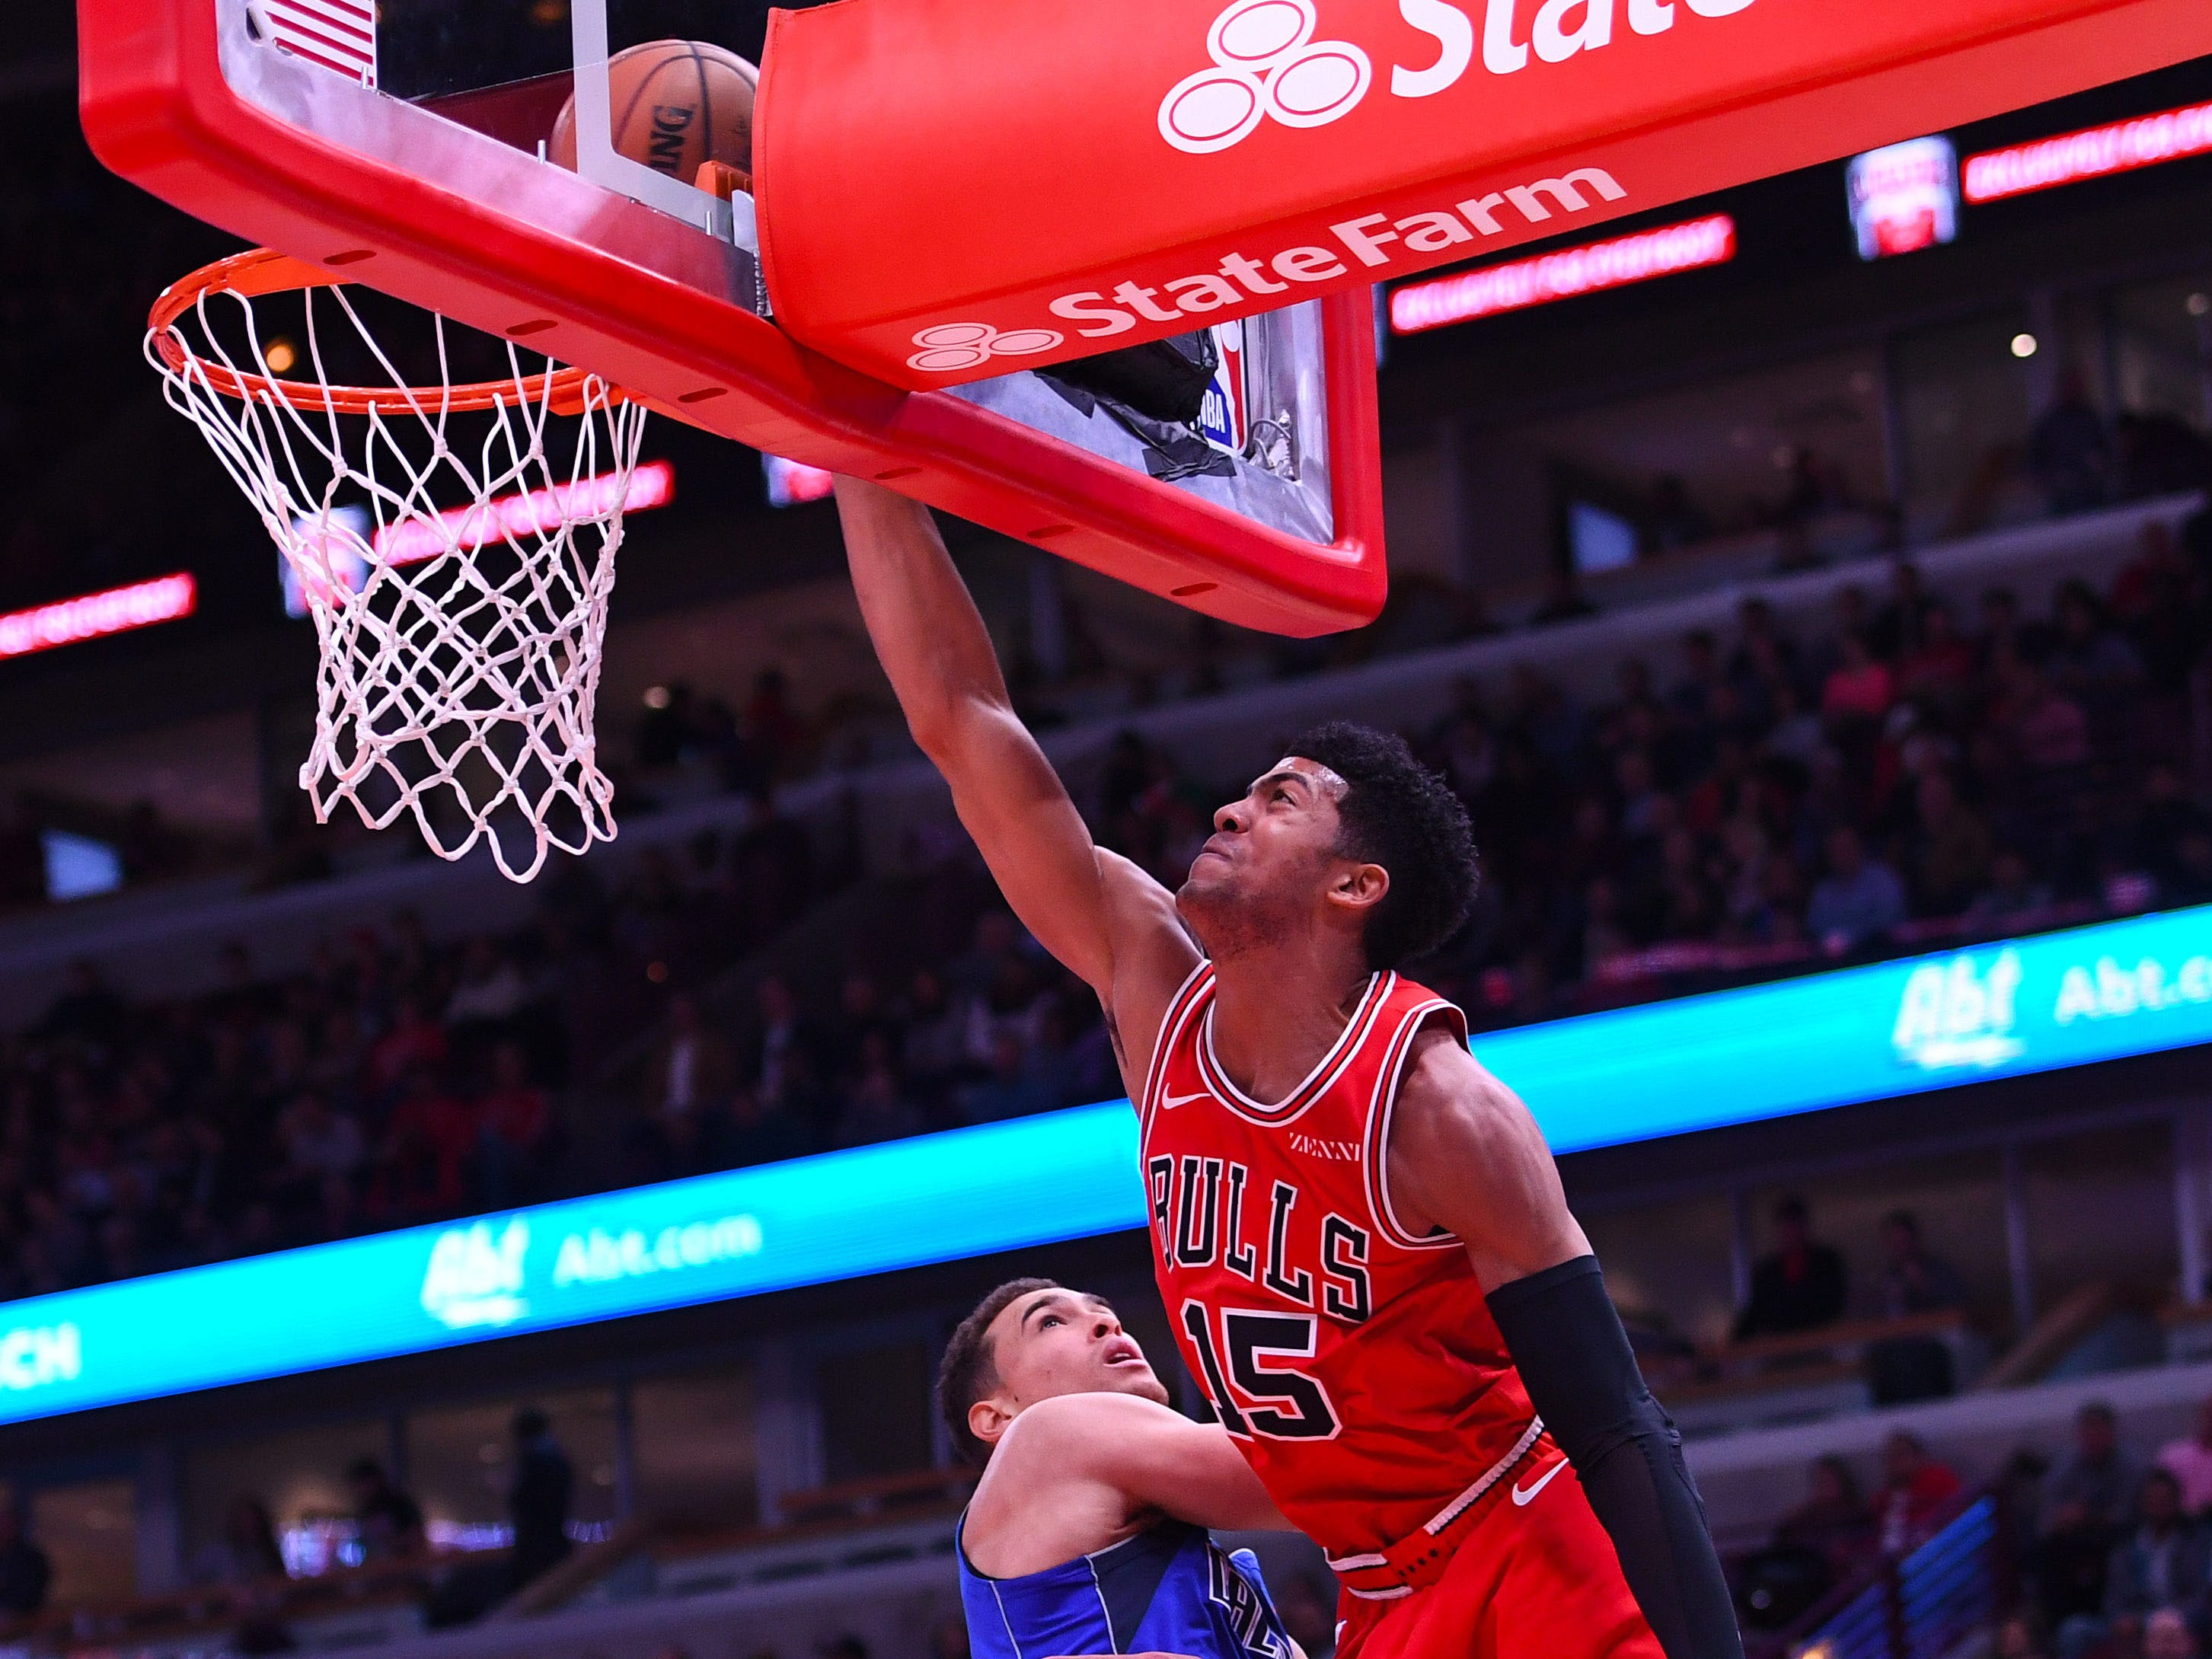 Nov. 12: Bulls forward Chandler Hutchison (15) rises up for a one-handed dunk over Mavericks forward Dwight Powell during the first half in Chicago.